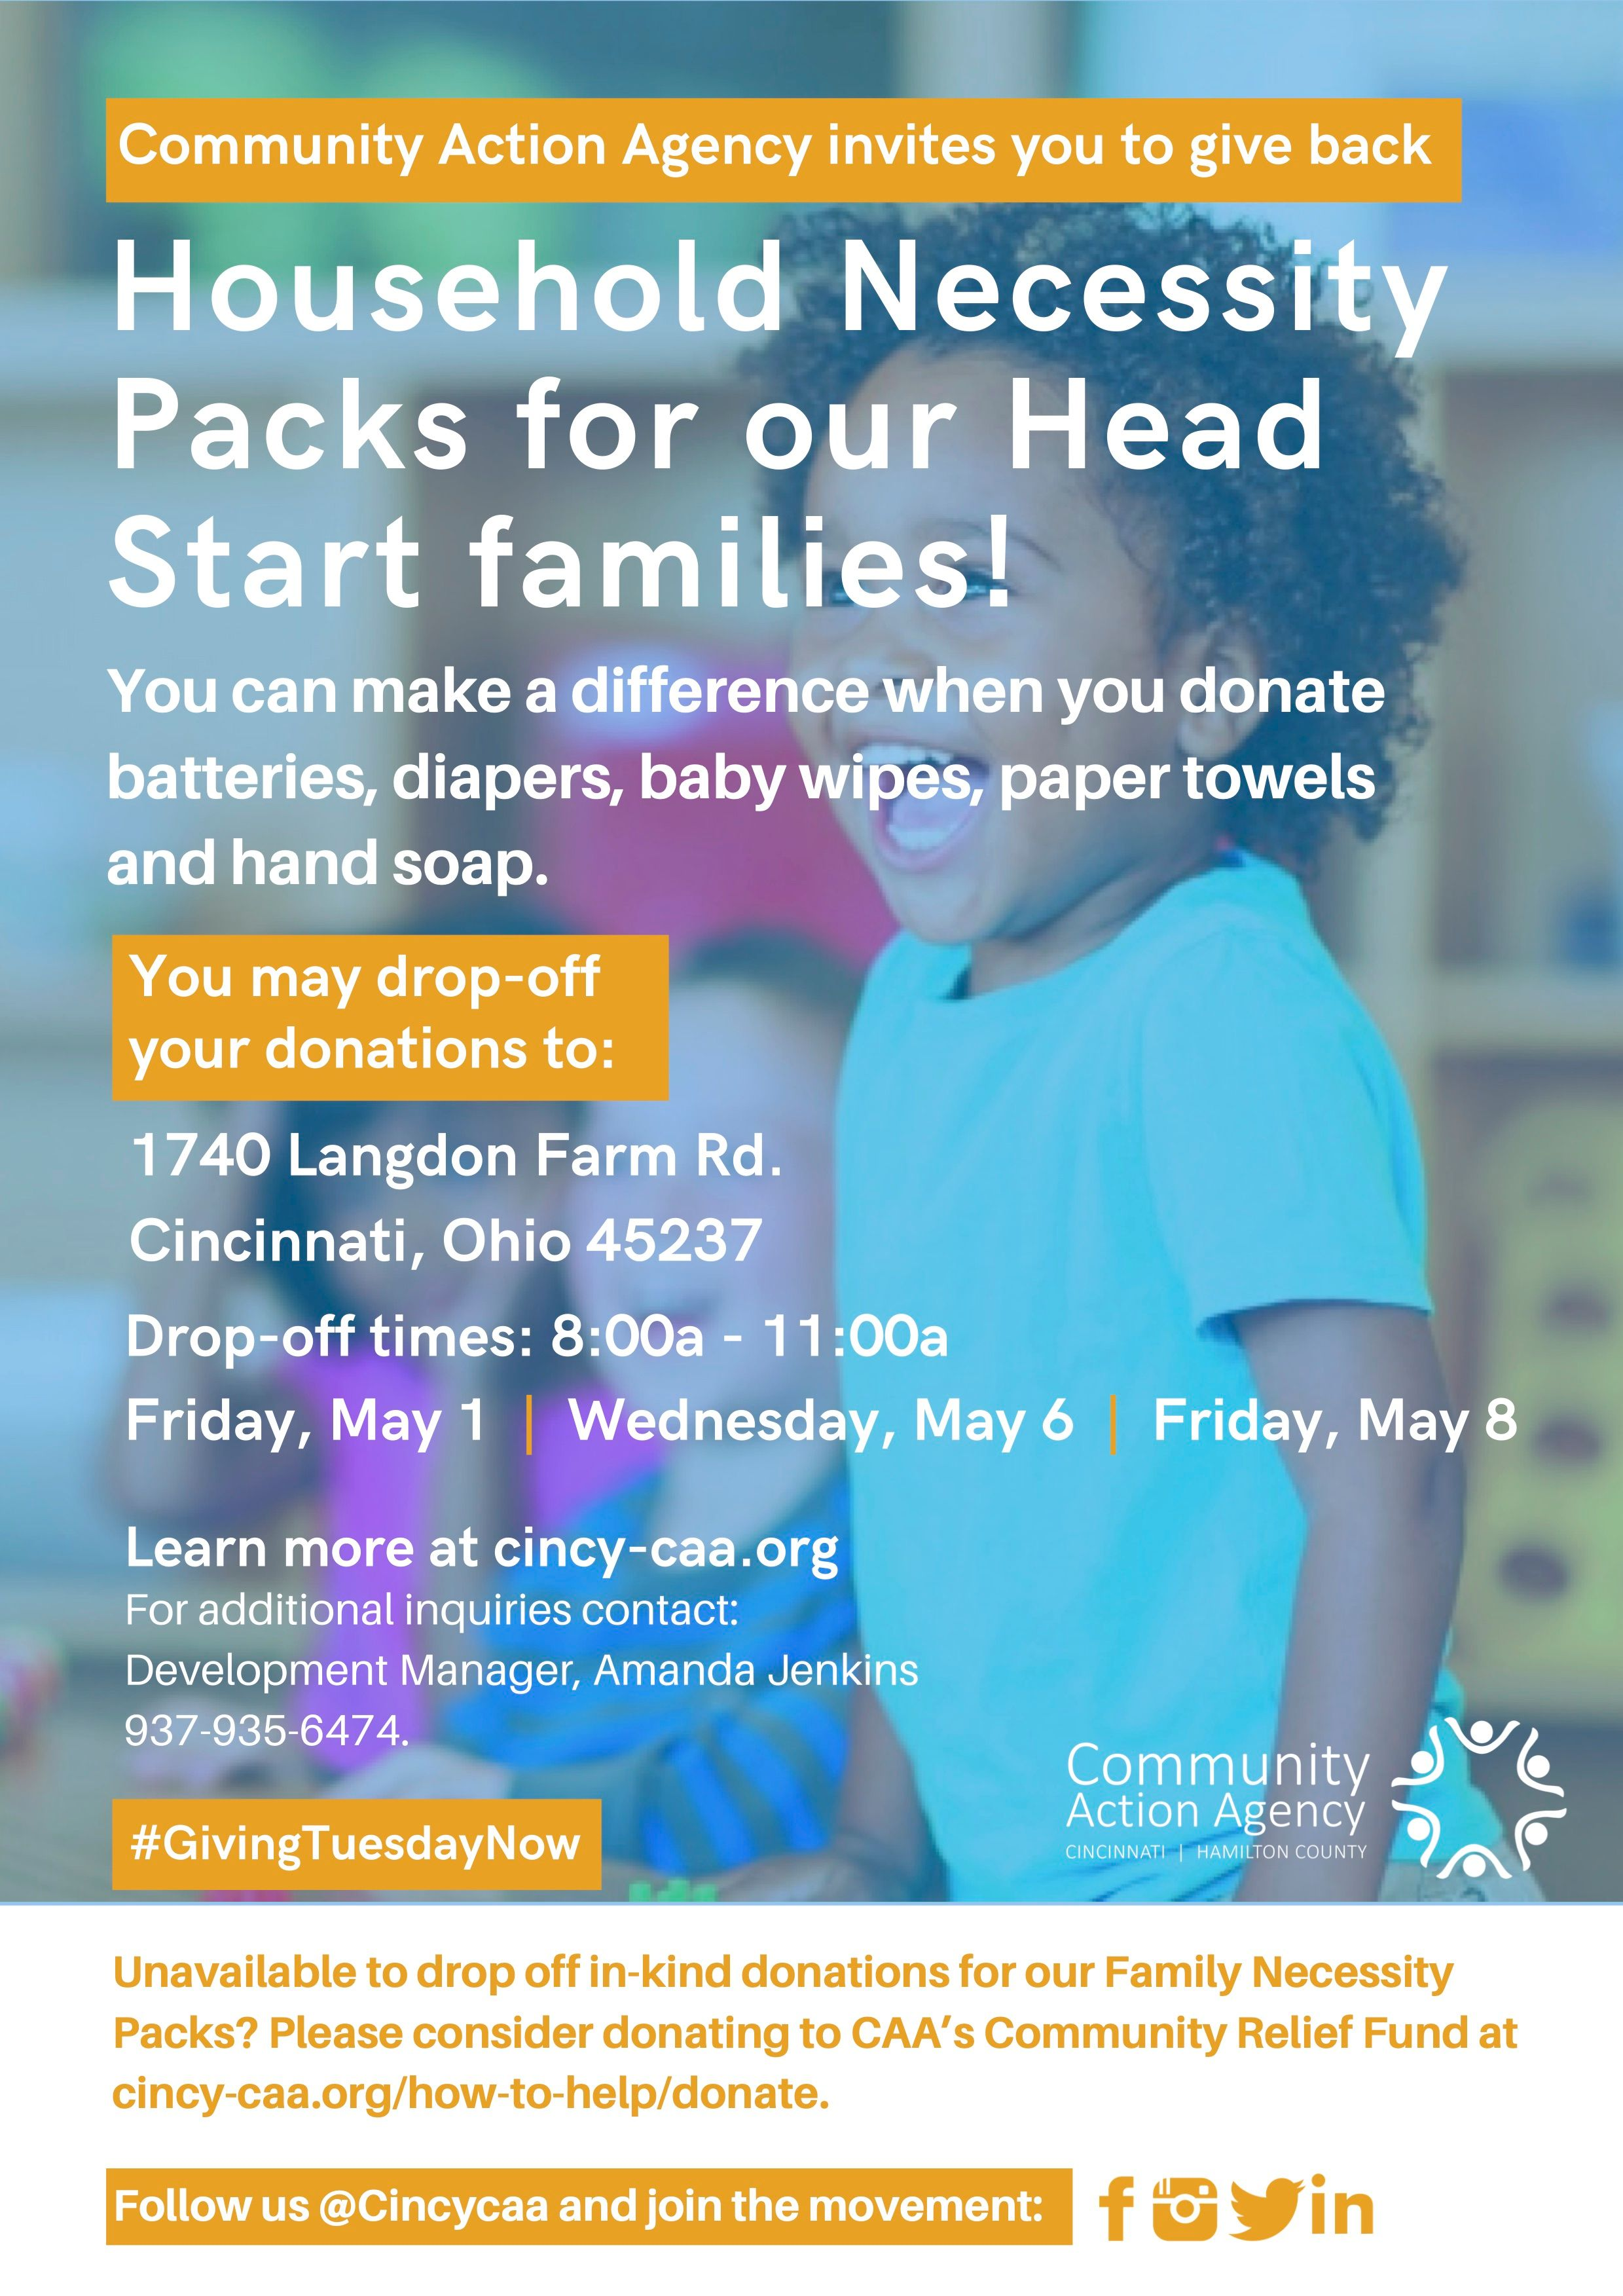 Donation Drive for Household Necessity Packs for Head Start Families